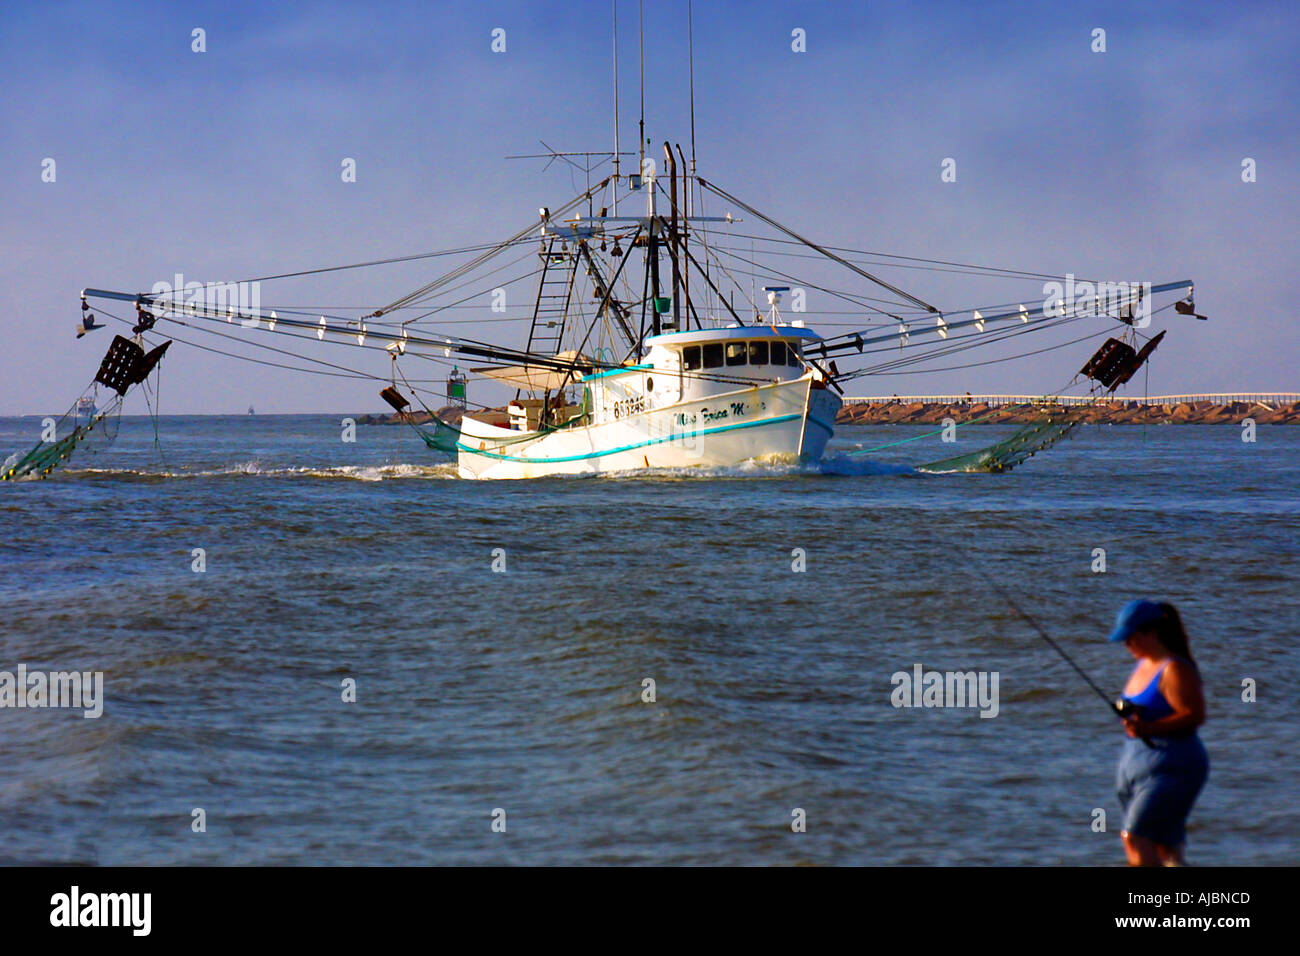 Shrimp Drag Net Stock Photos & Shrimp Drag Net Stock Images - Alamy